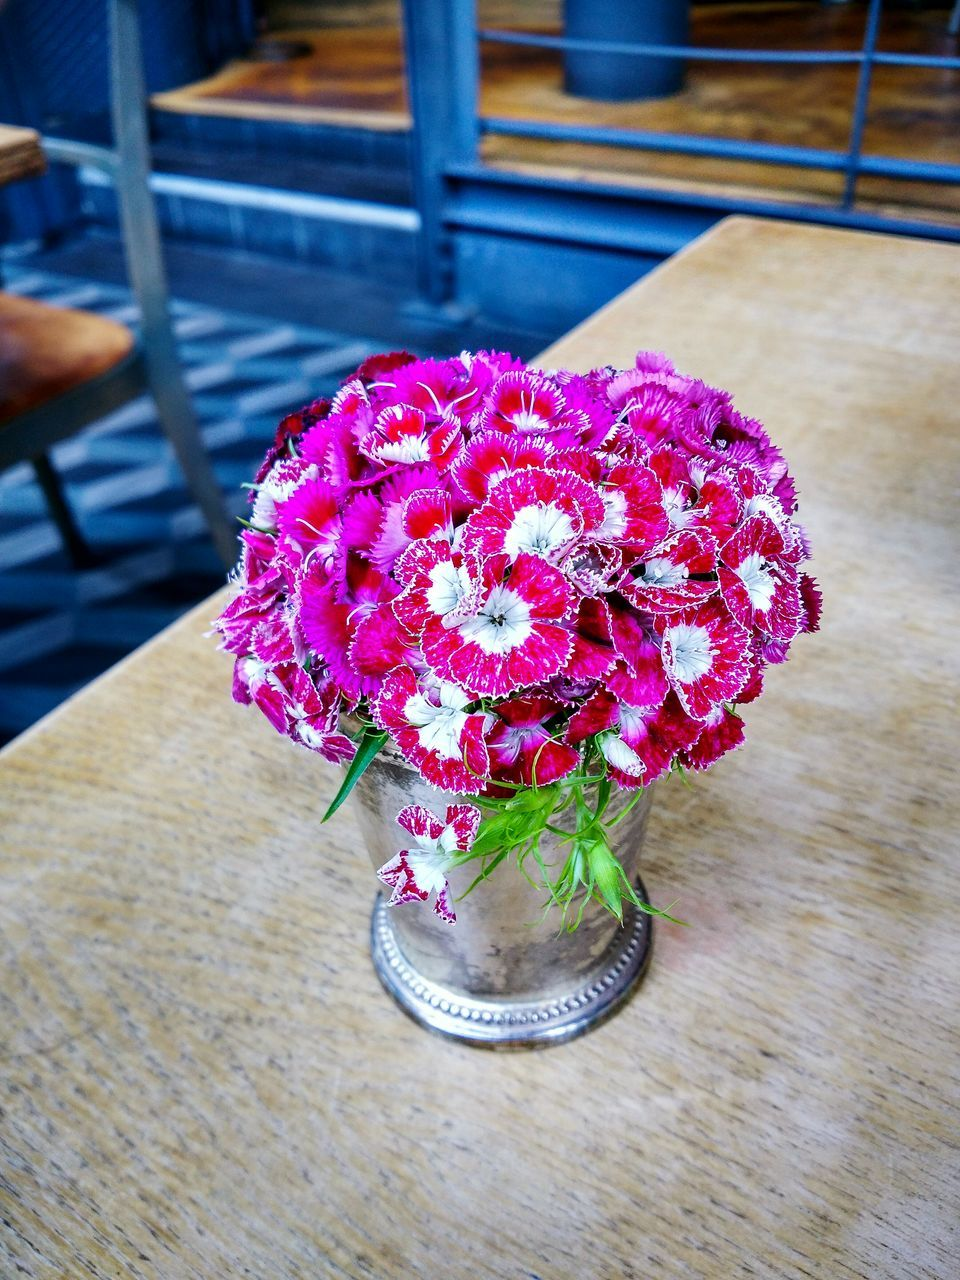 flower, table, freshness, indoors, no people, fragility, vase, high angle view, close-up, wood - material, nature, pink color, flower head, day, beauty in nature